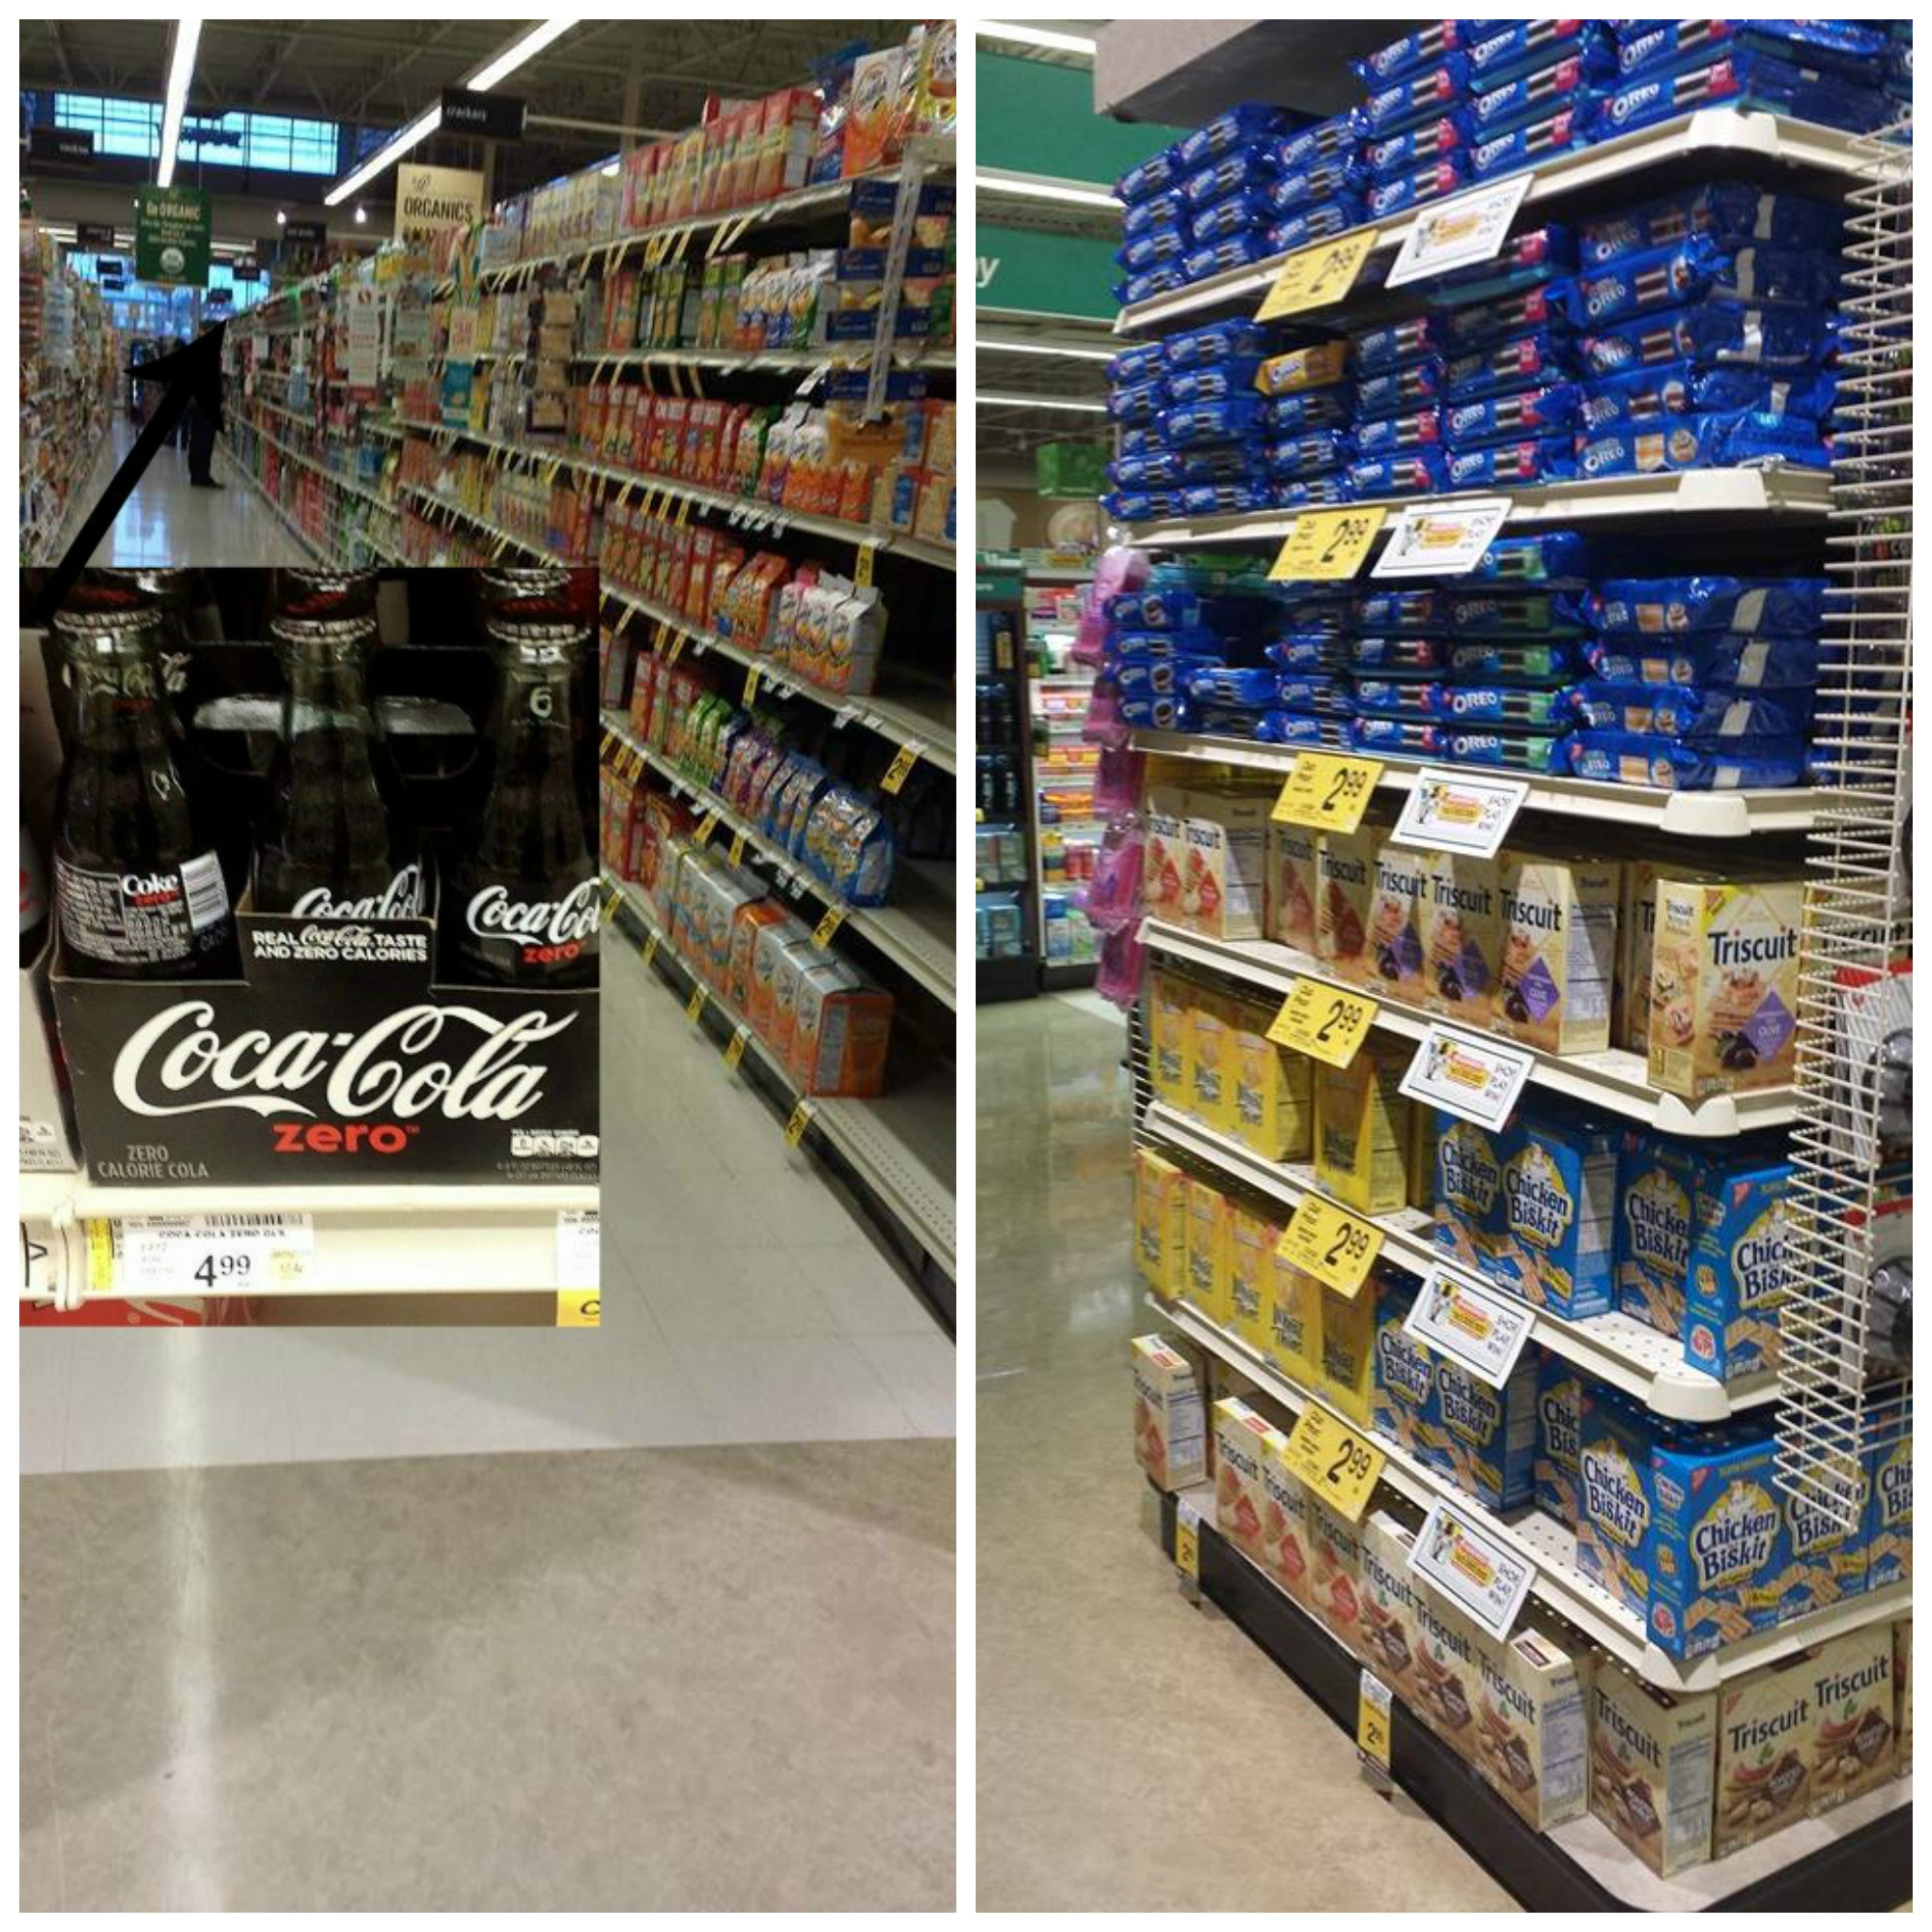 Coke Zero and Oreo at Safeway